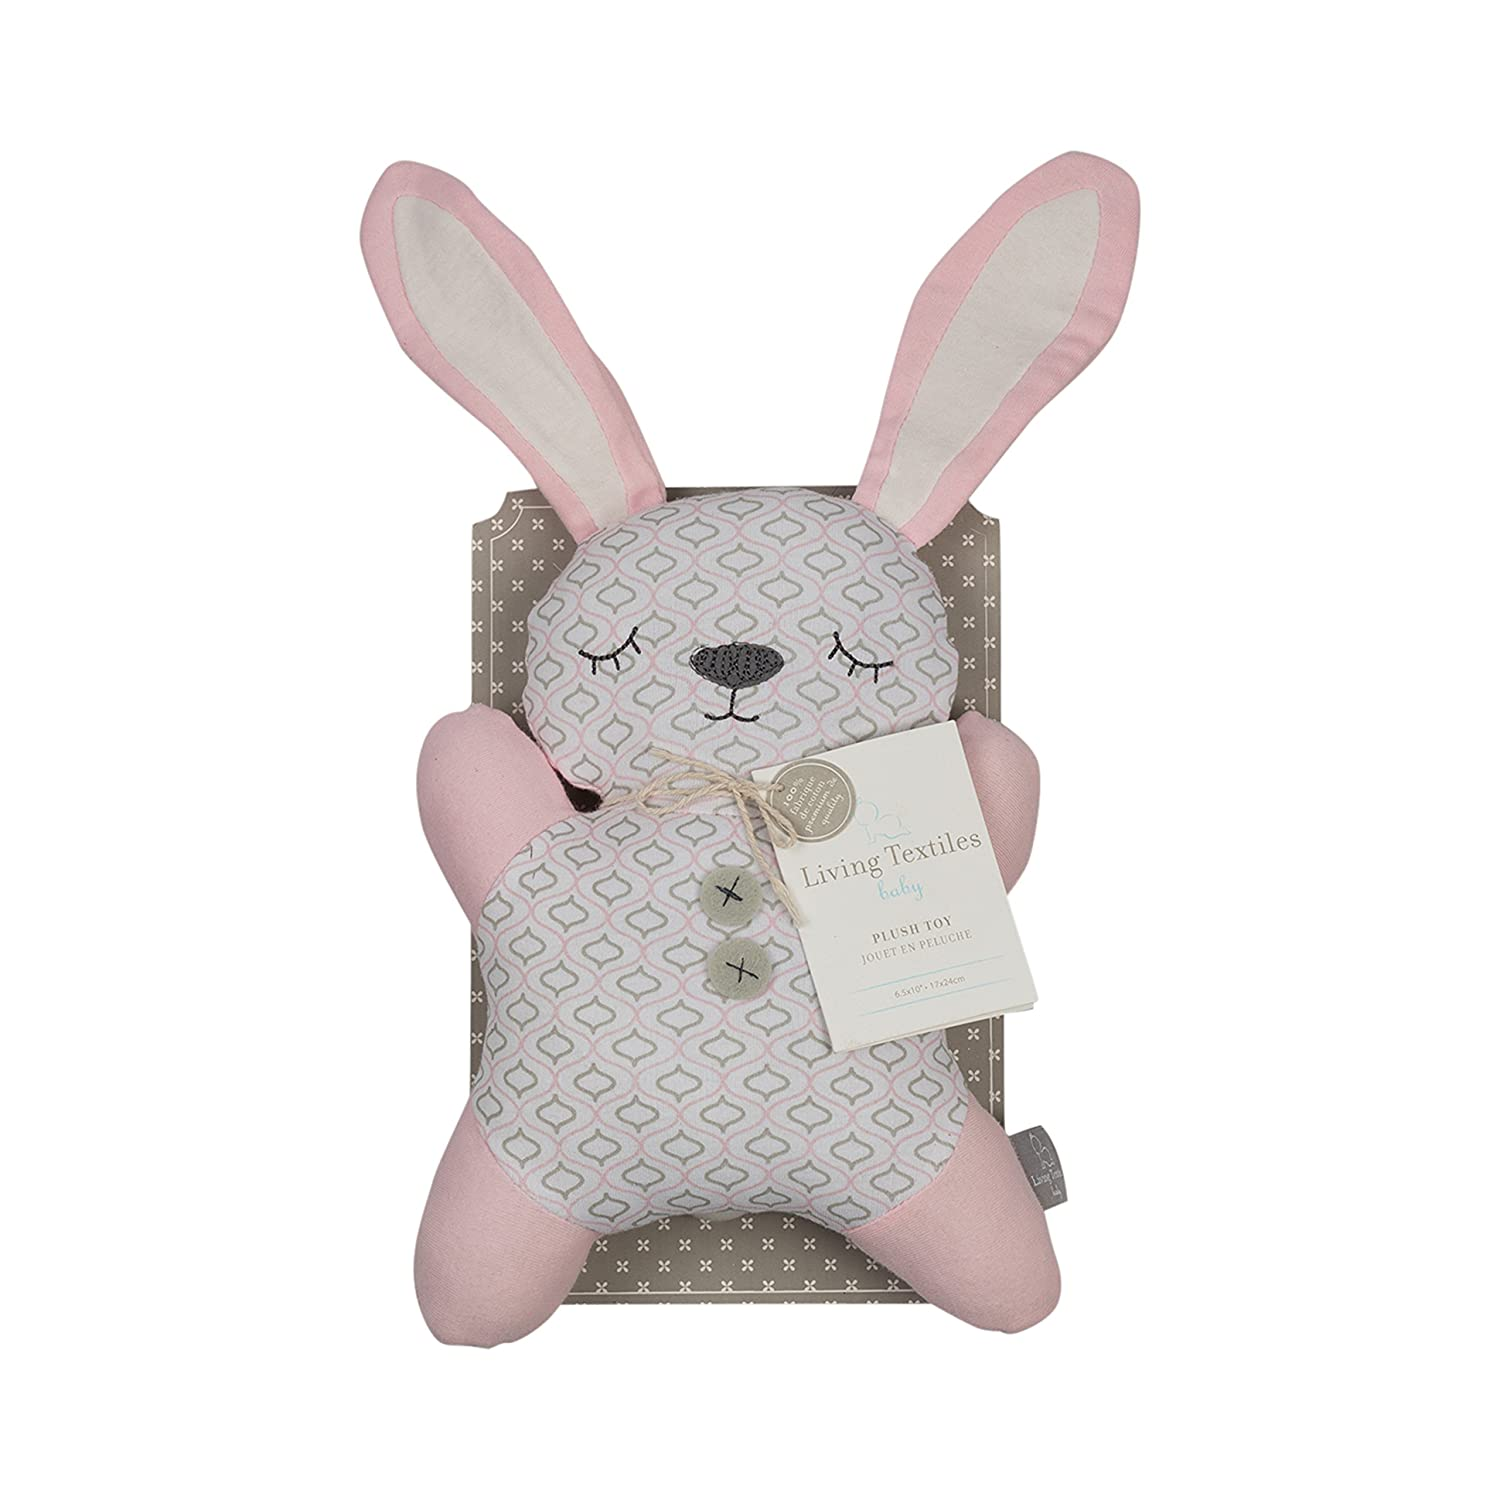 Amazon.com: Living Textiles 2D Plush Toy – Bunny – Soft, Padded Stuffed Animal, Soft Jersey Exterior W/Plush Fill, Classic & Timeless Addition For Nursery, ...